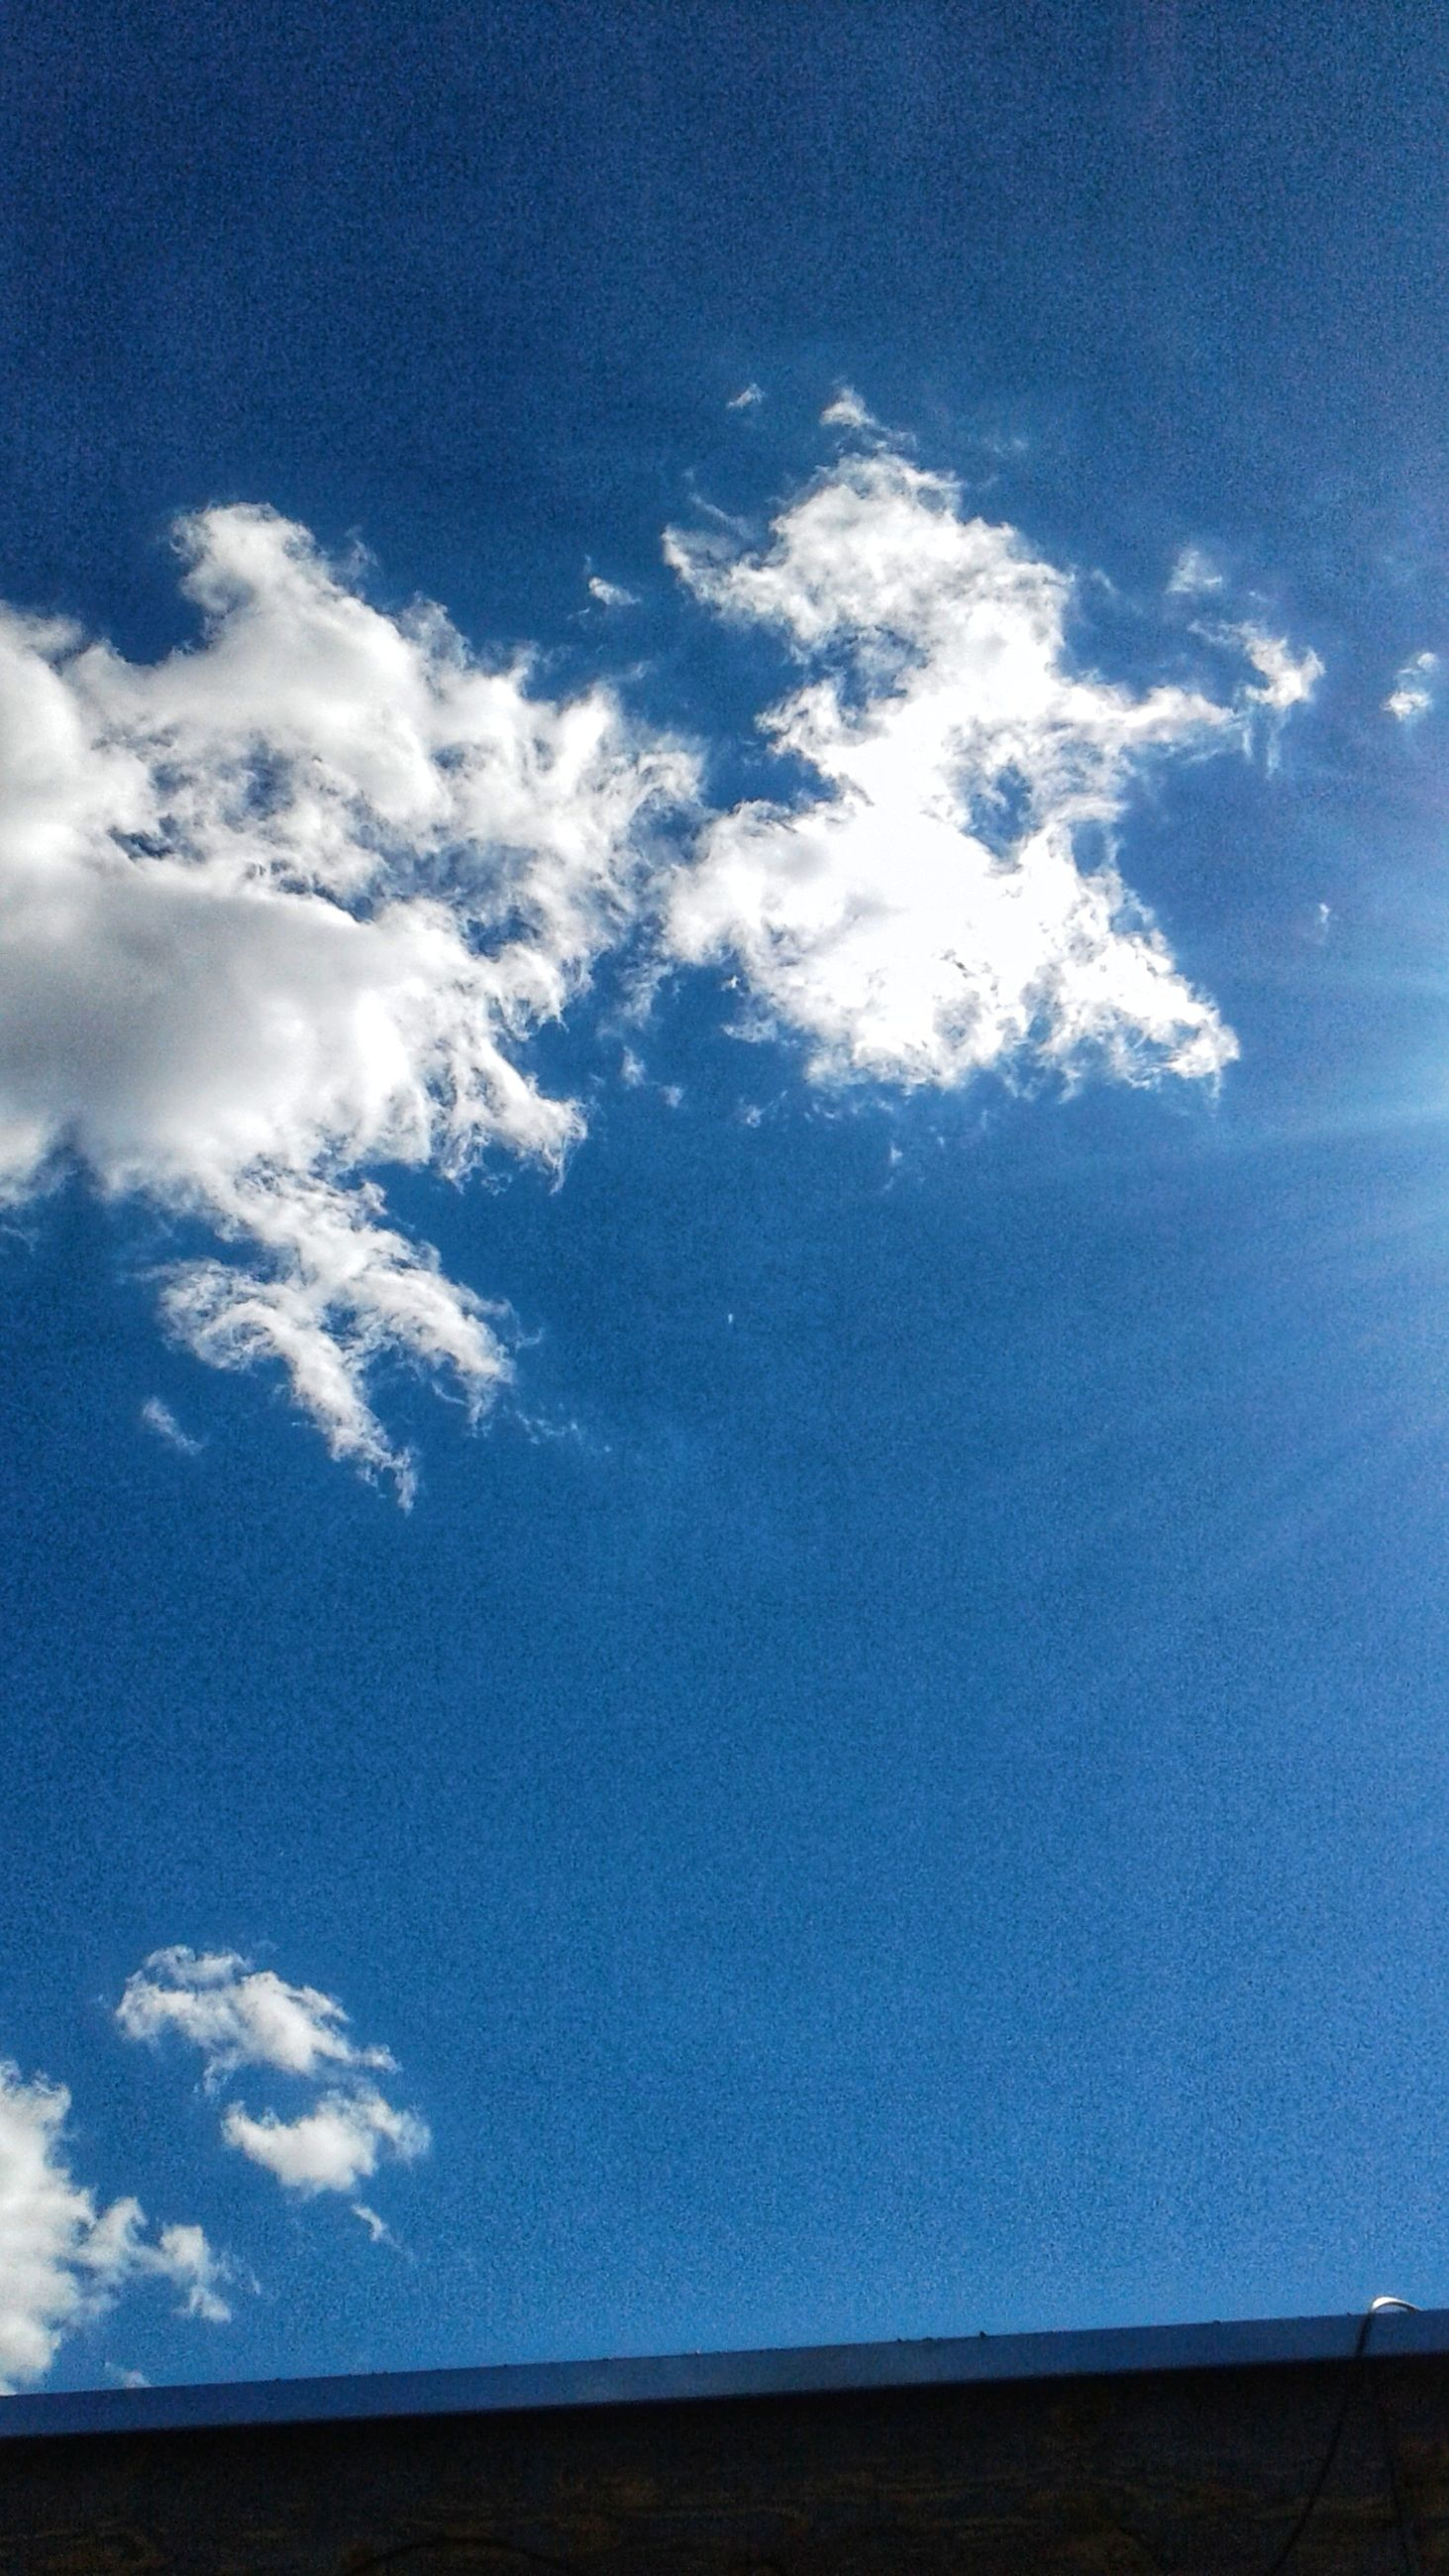 sky, cloud - sky, blue, low angle view, beauty in nature, tranquility, nature, tranquil scene, day, scenics, no people, outdoors